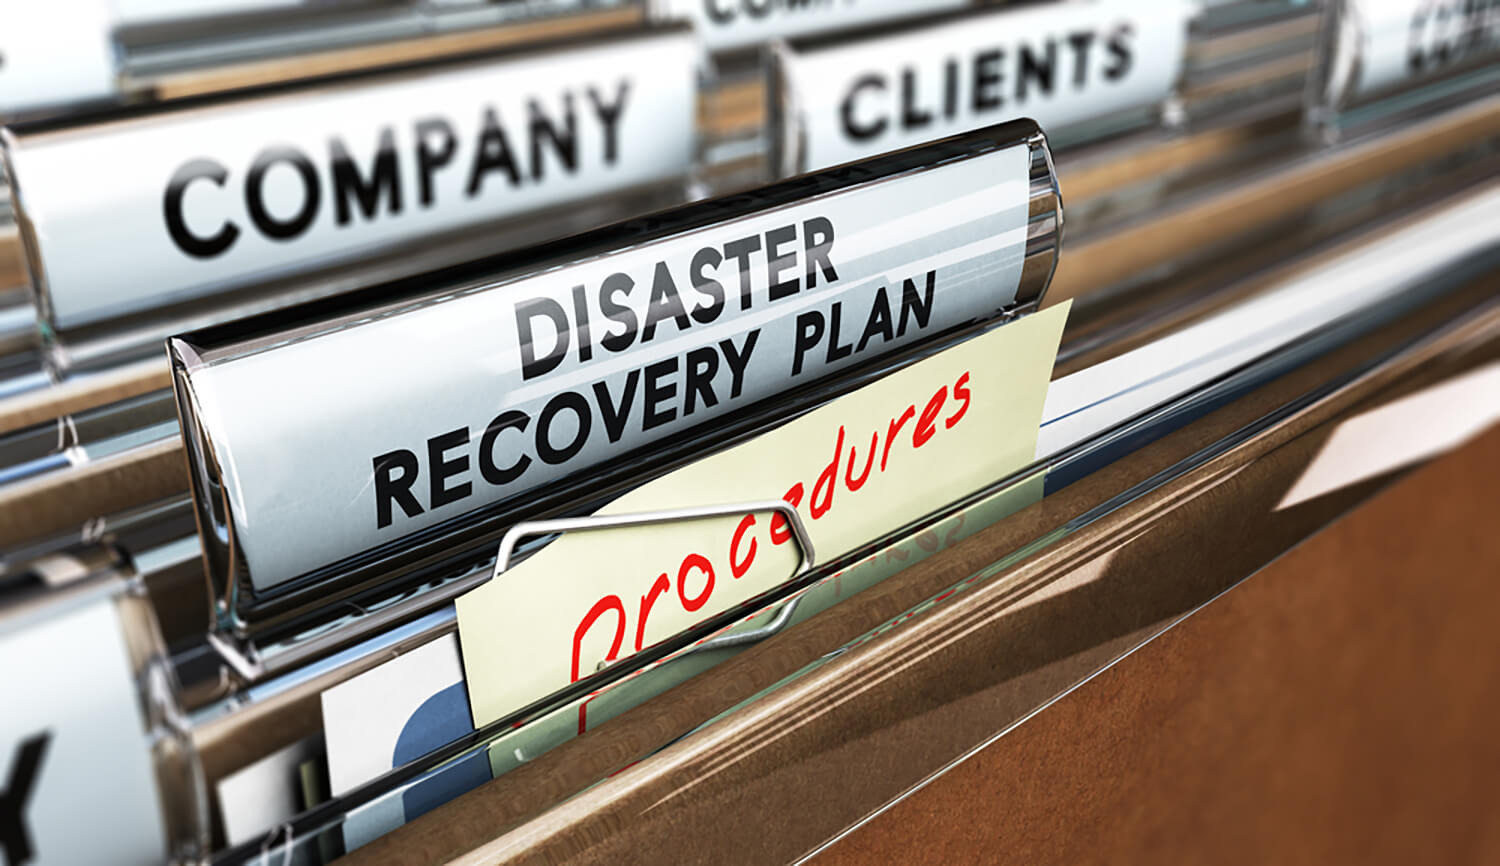 EC_Disaster Recovery 2